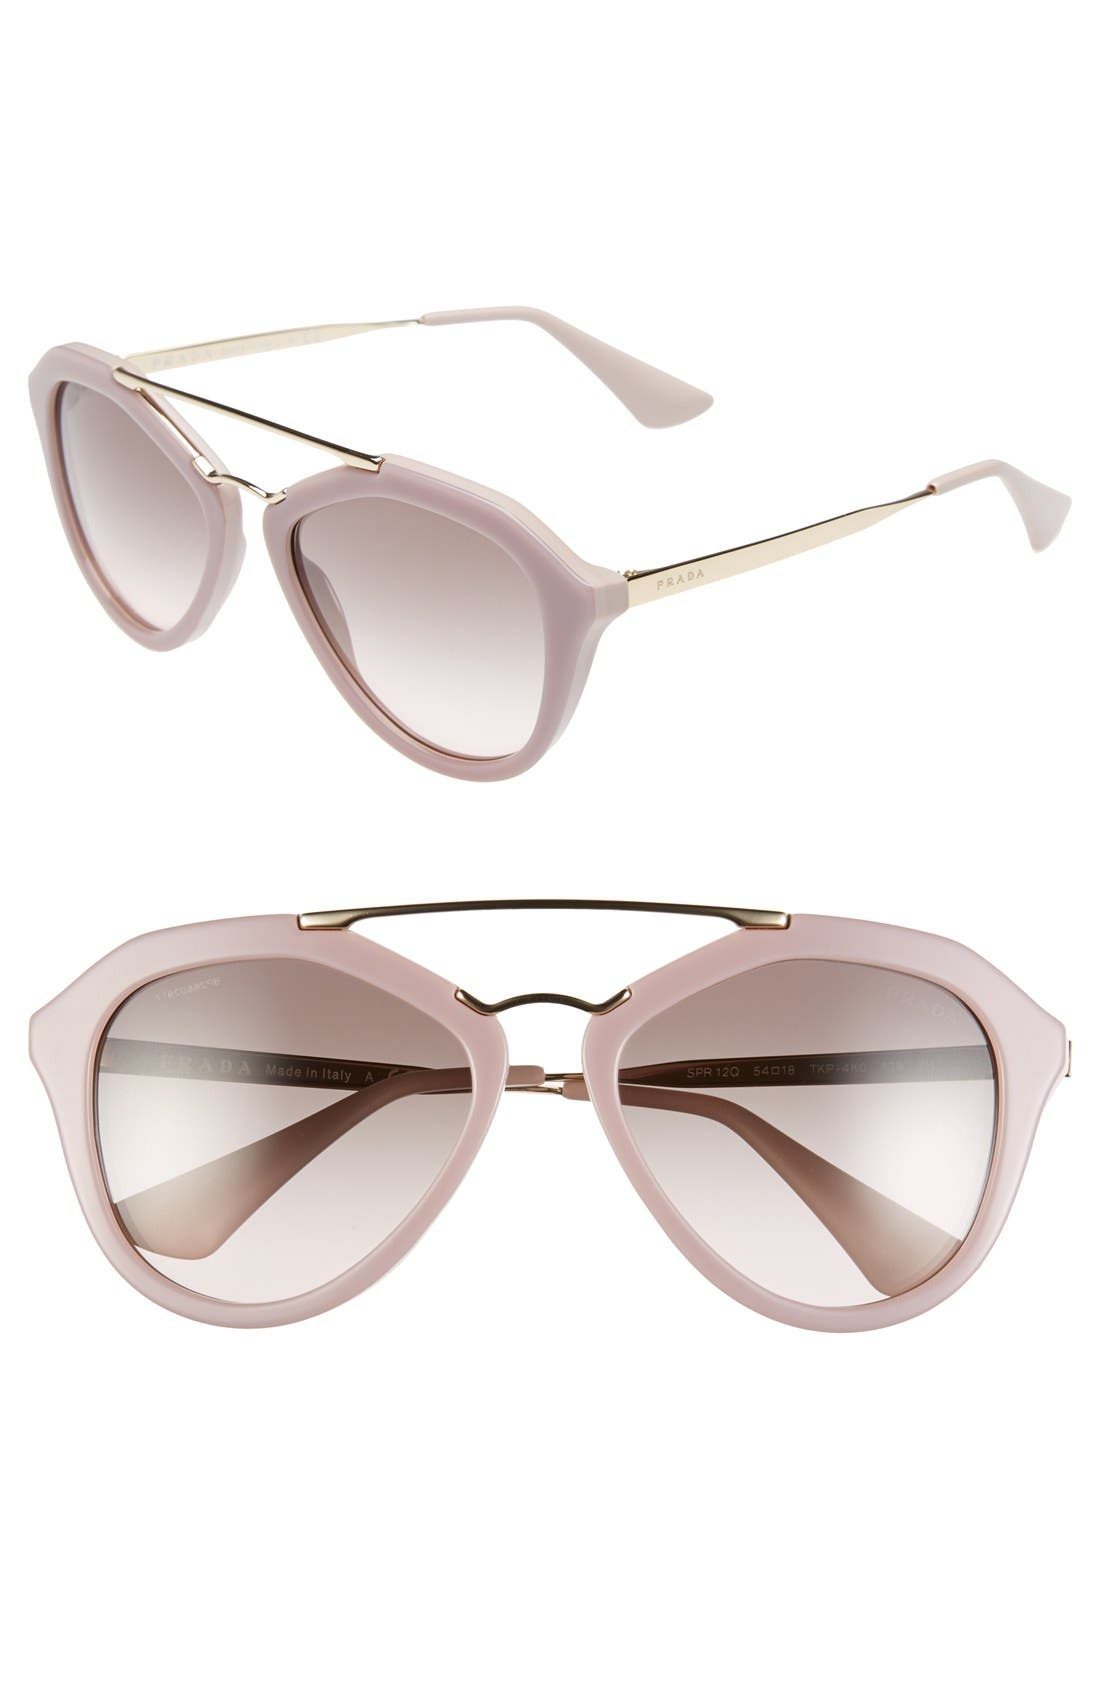 Alternate Image 1 Selected - Prada 54mm Gradient Lens Sunglasses